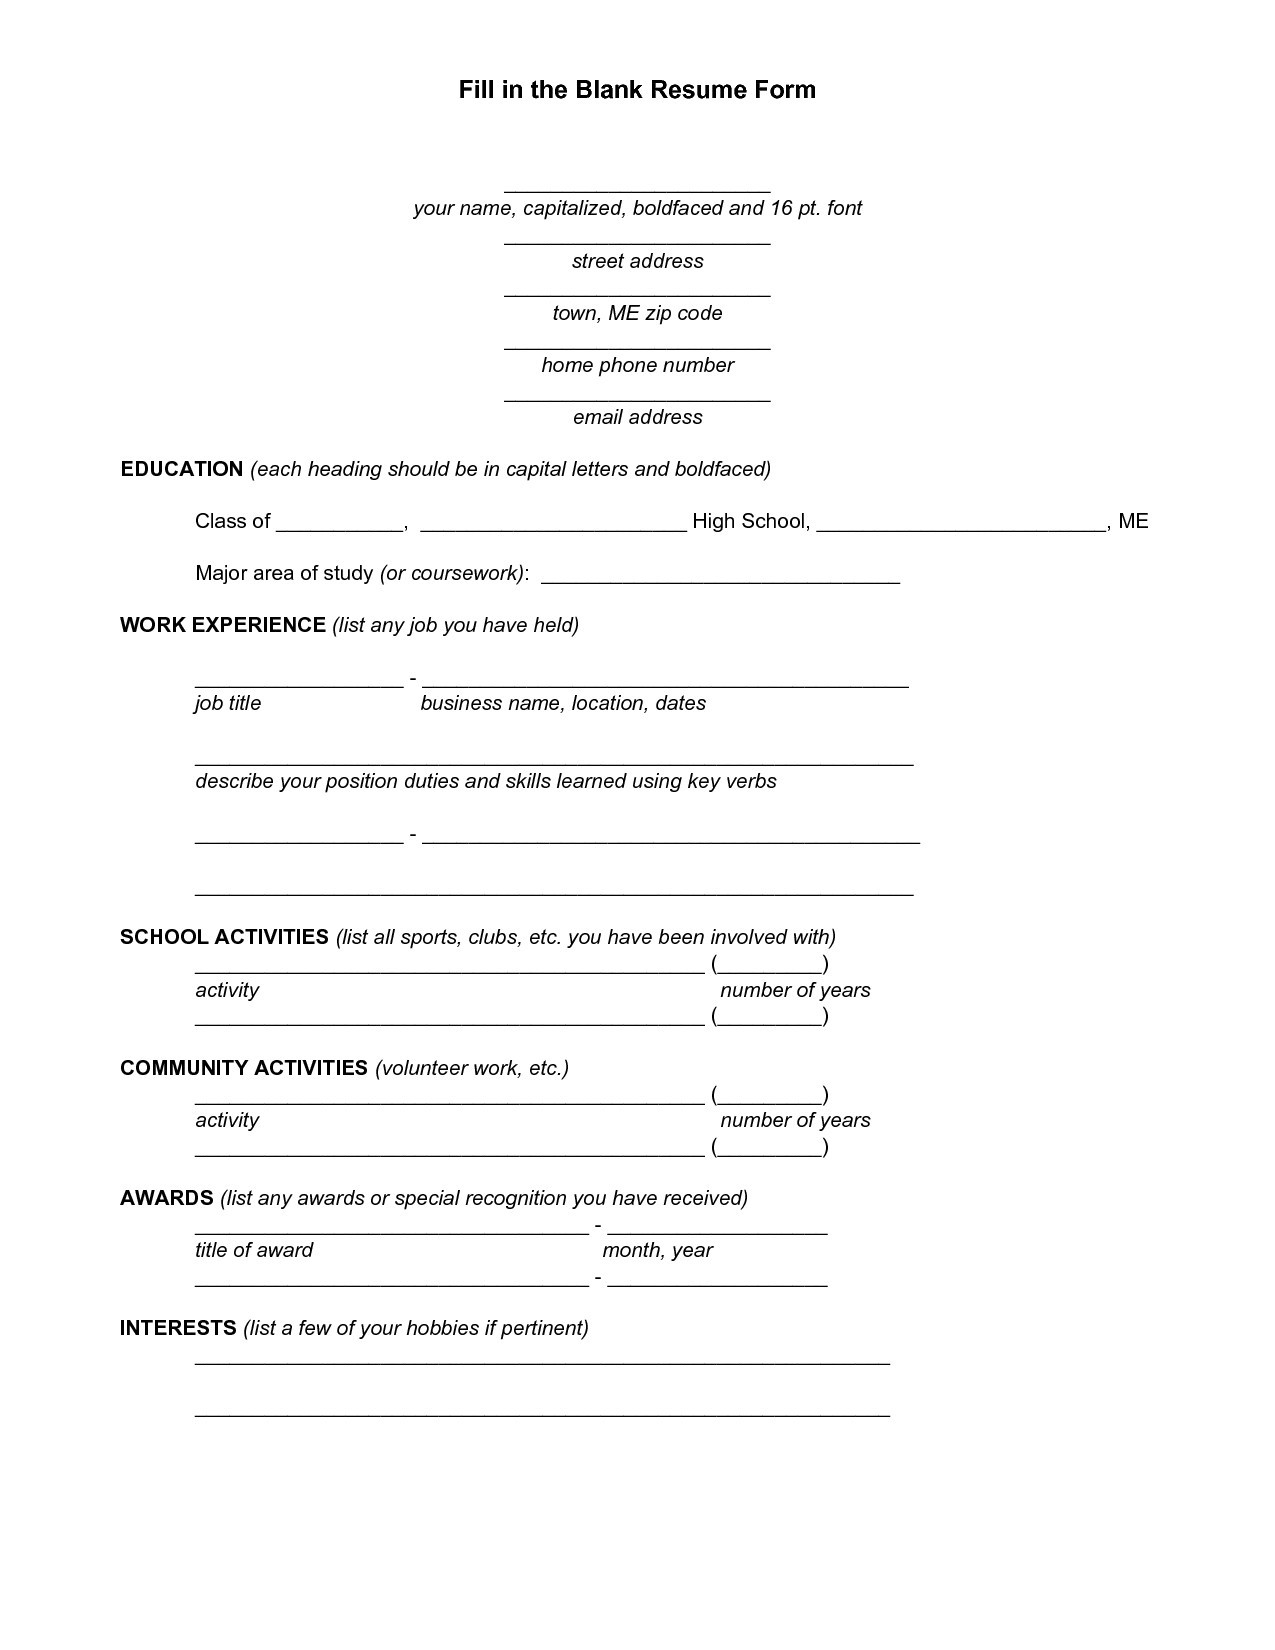 Marriott School Resume Template - 25 Fresh High School Student Resume Templates